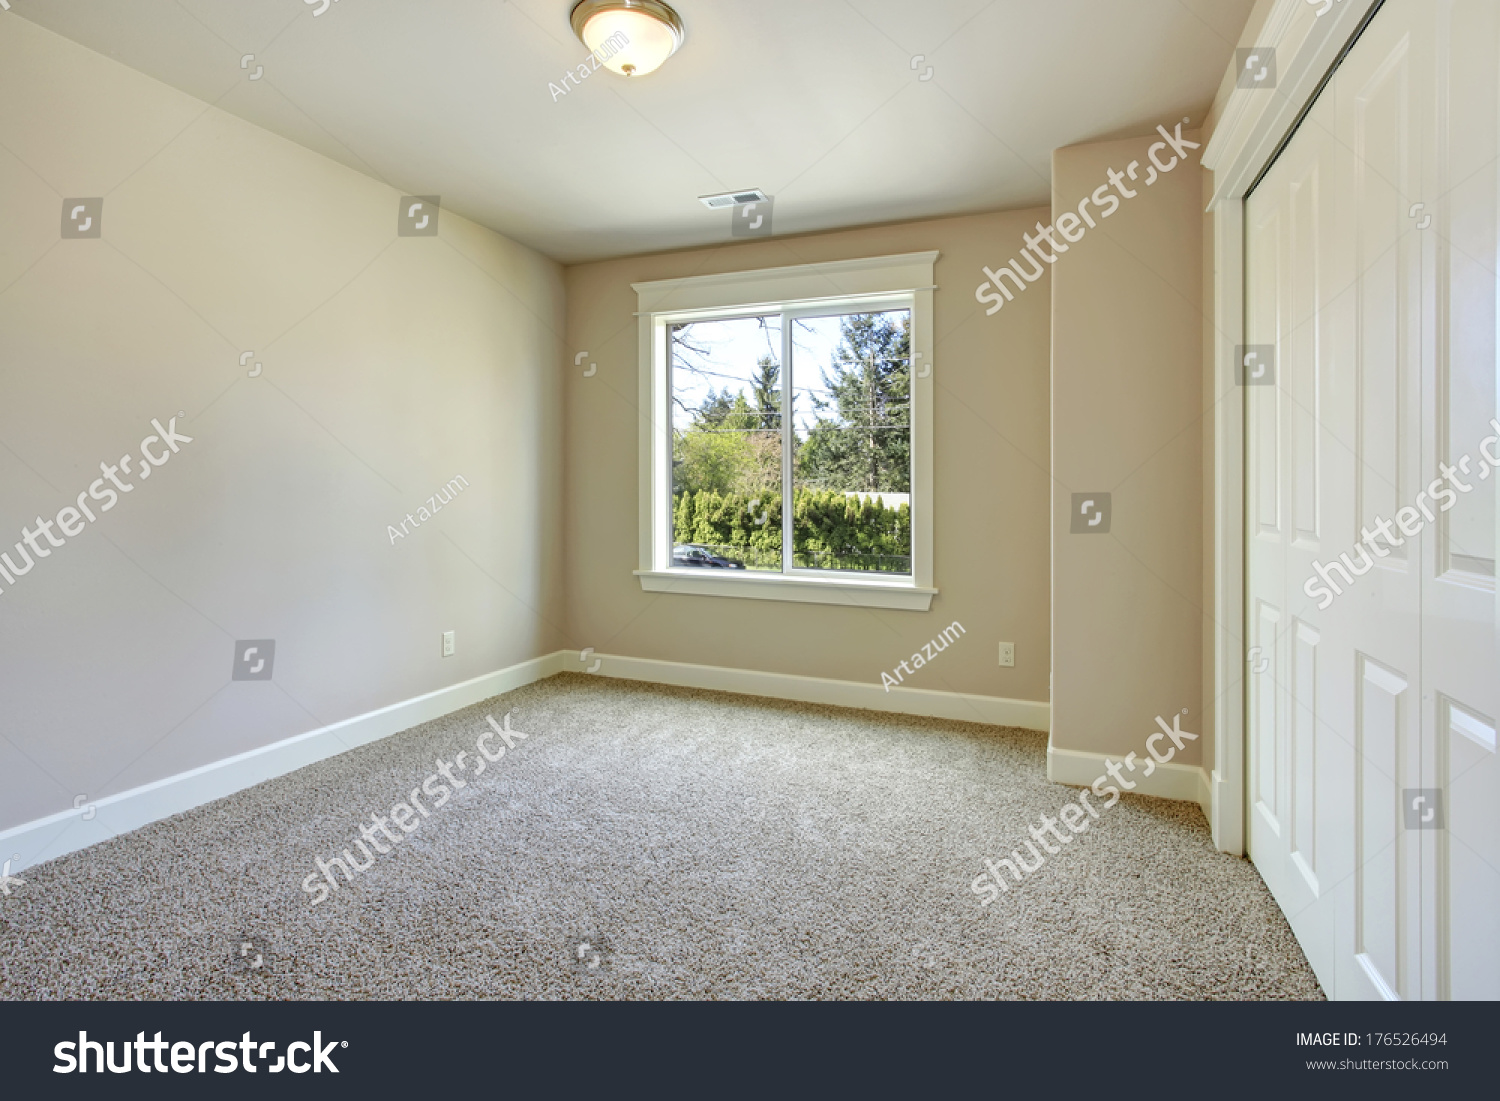 Bright Empty Room With One Window, Beige Carpet Floor